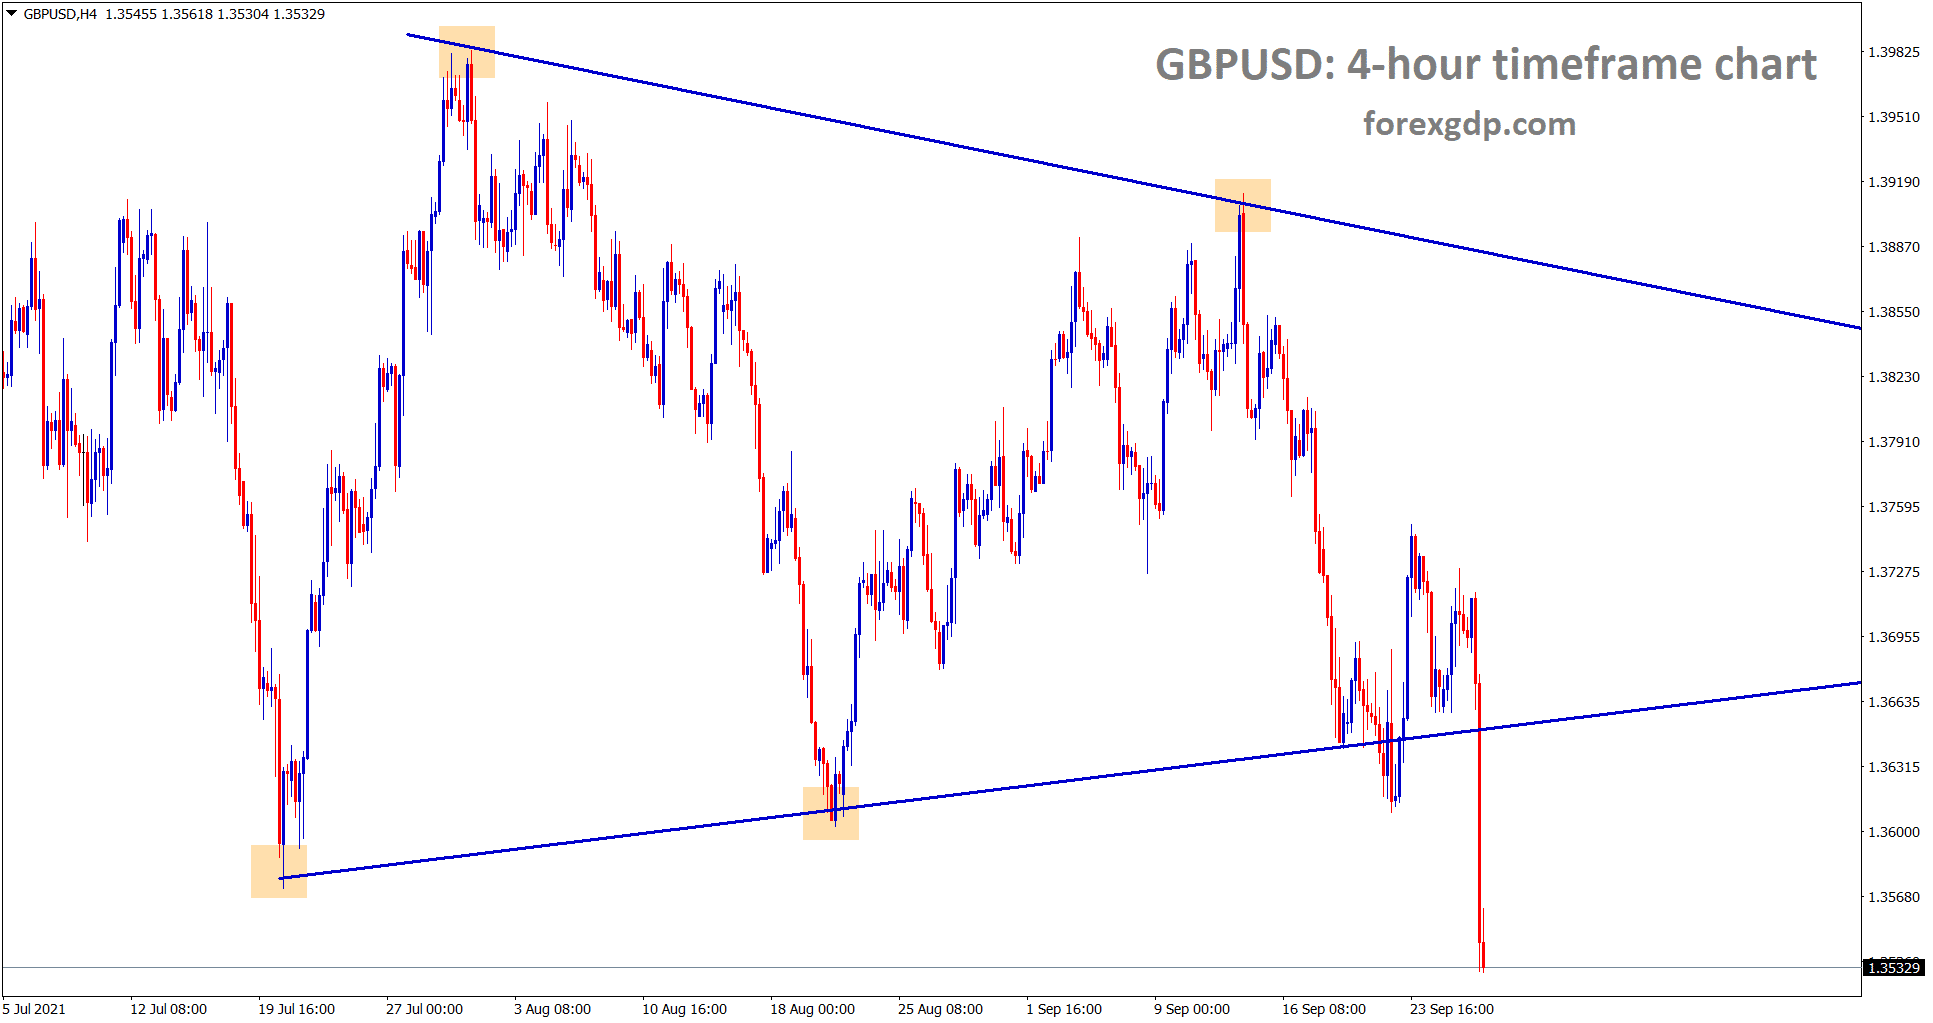 GBPUSD has made a strong breakout today from the symmetrical triangle pattern and also broken all the recent support levels